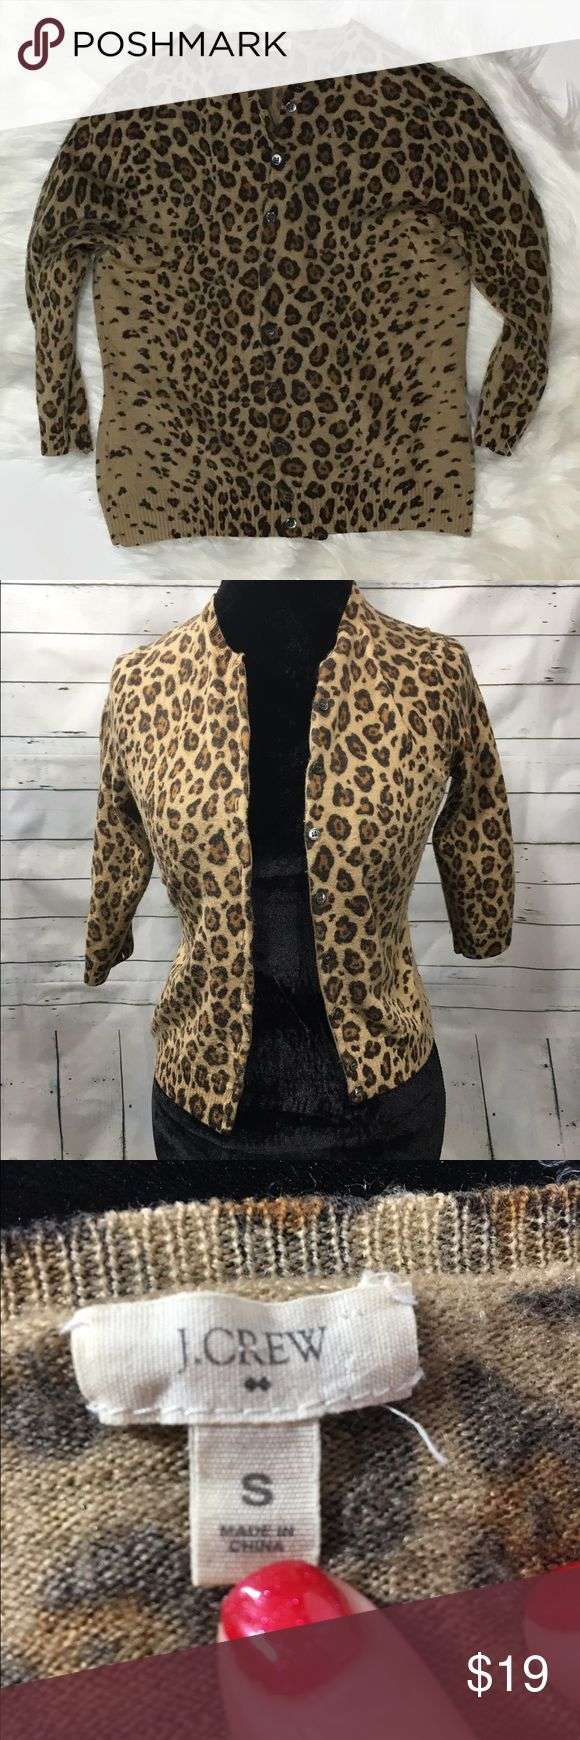 """J.Crew leopard print 3/4 sleeve cardigan 💯%wool Women's J.Crew Leopard Animal print 100% wool button down cardigan with 3/4 sleeves. some pilling on sides. Size small  Armpit to Armpit-15"""" Overall Length-18"""" J. Crew Sweaters Cardigans"""